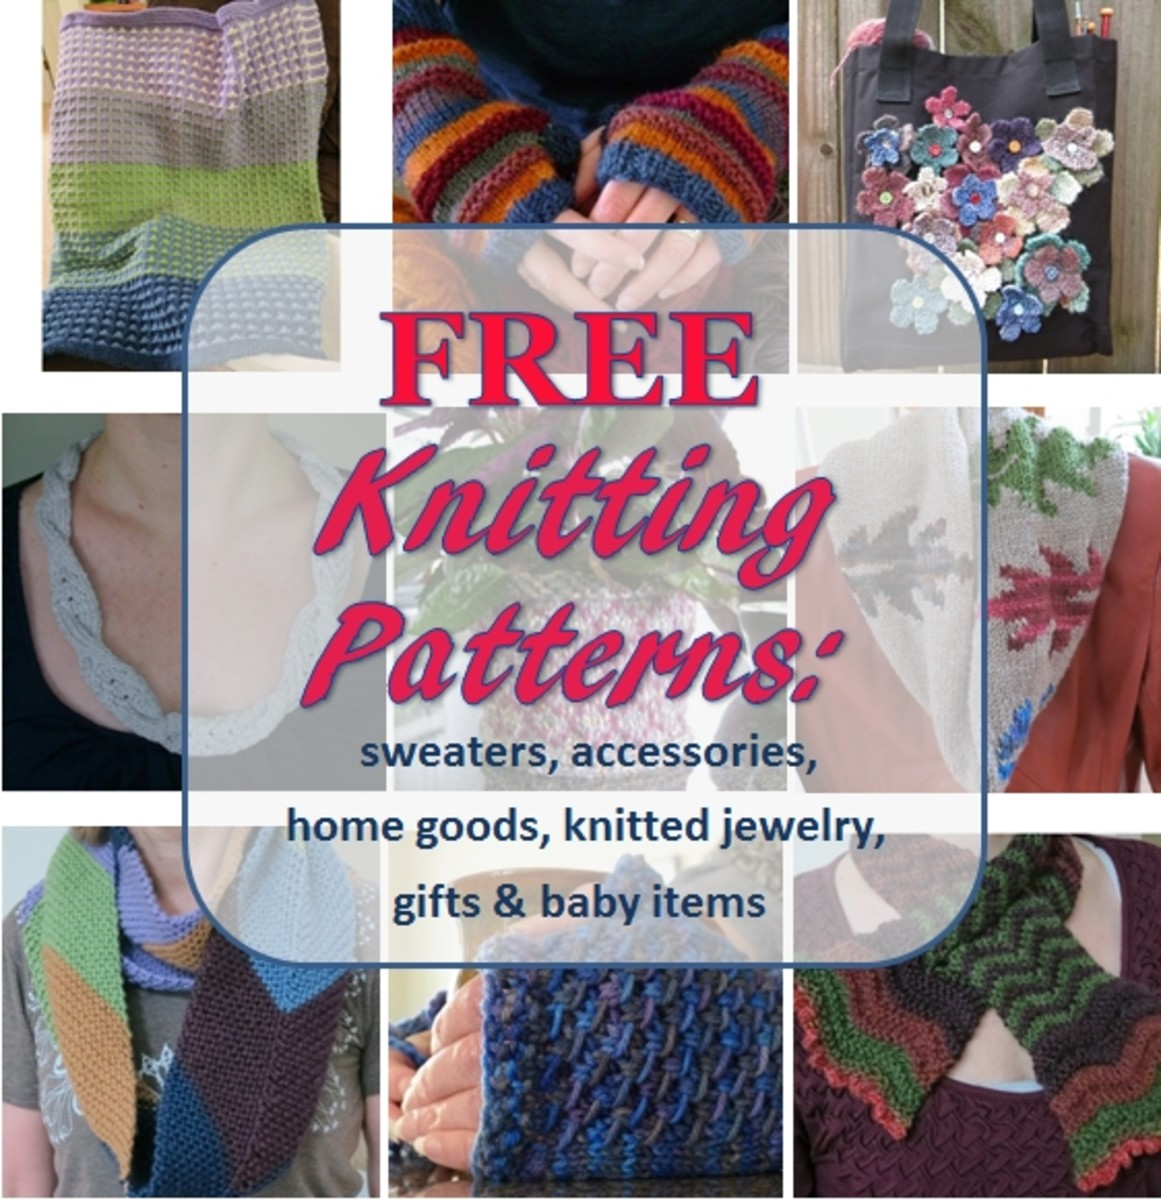 Free Knitting Patterns:  Sweaters, Accessories, Home Goods, Knitted Jewelry, and Baby Things